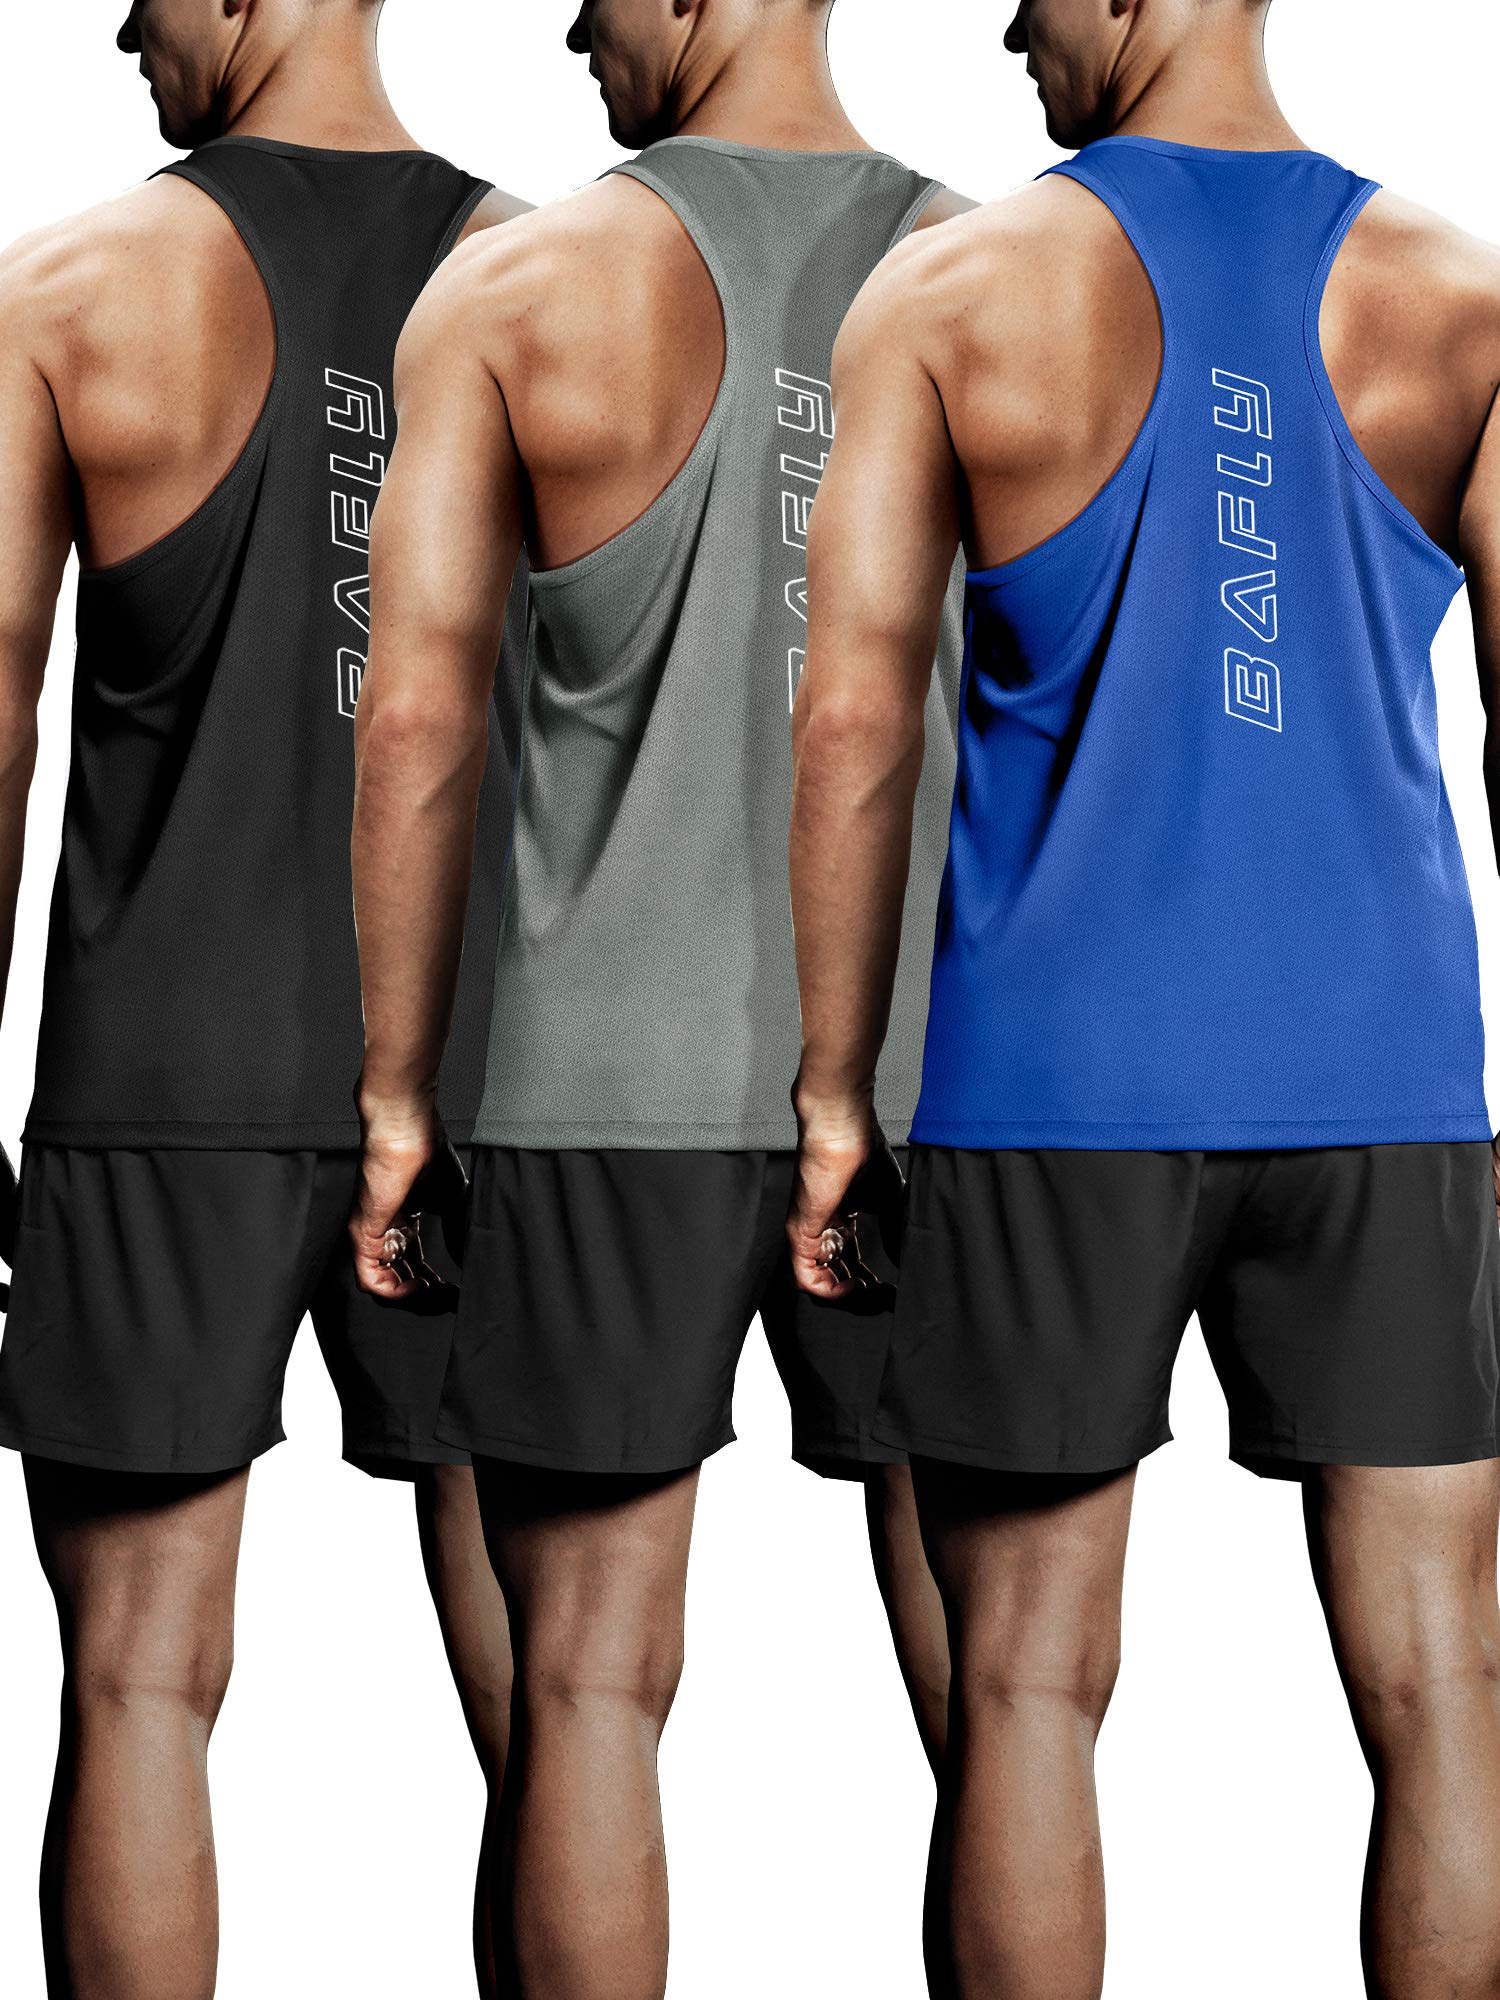 Bafly Men's 3 Pack Workout Tank Tops Dry Fit Y-Back Gym Muscle Sleeveless Training Tank by Bafly